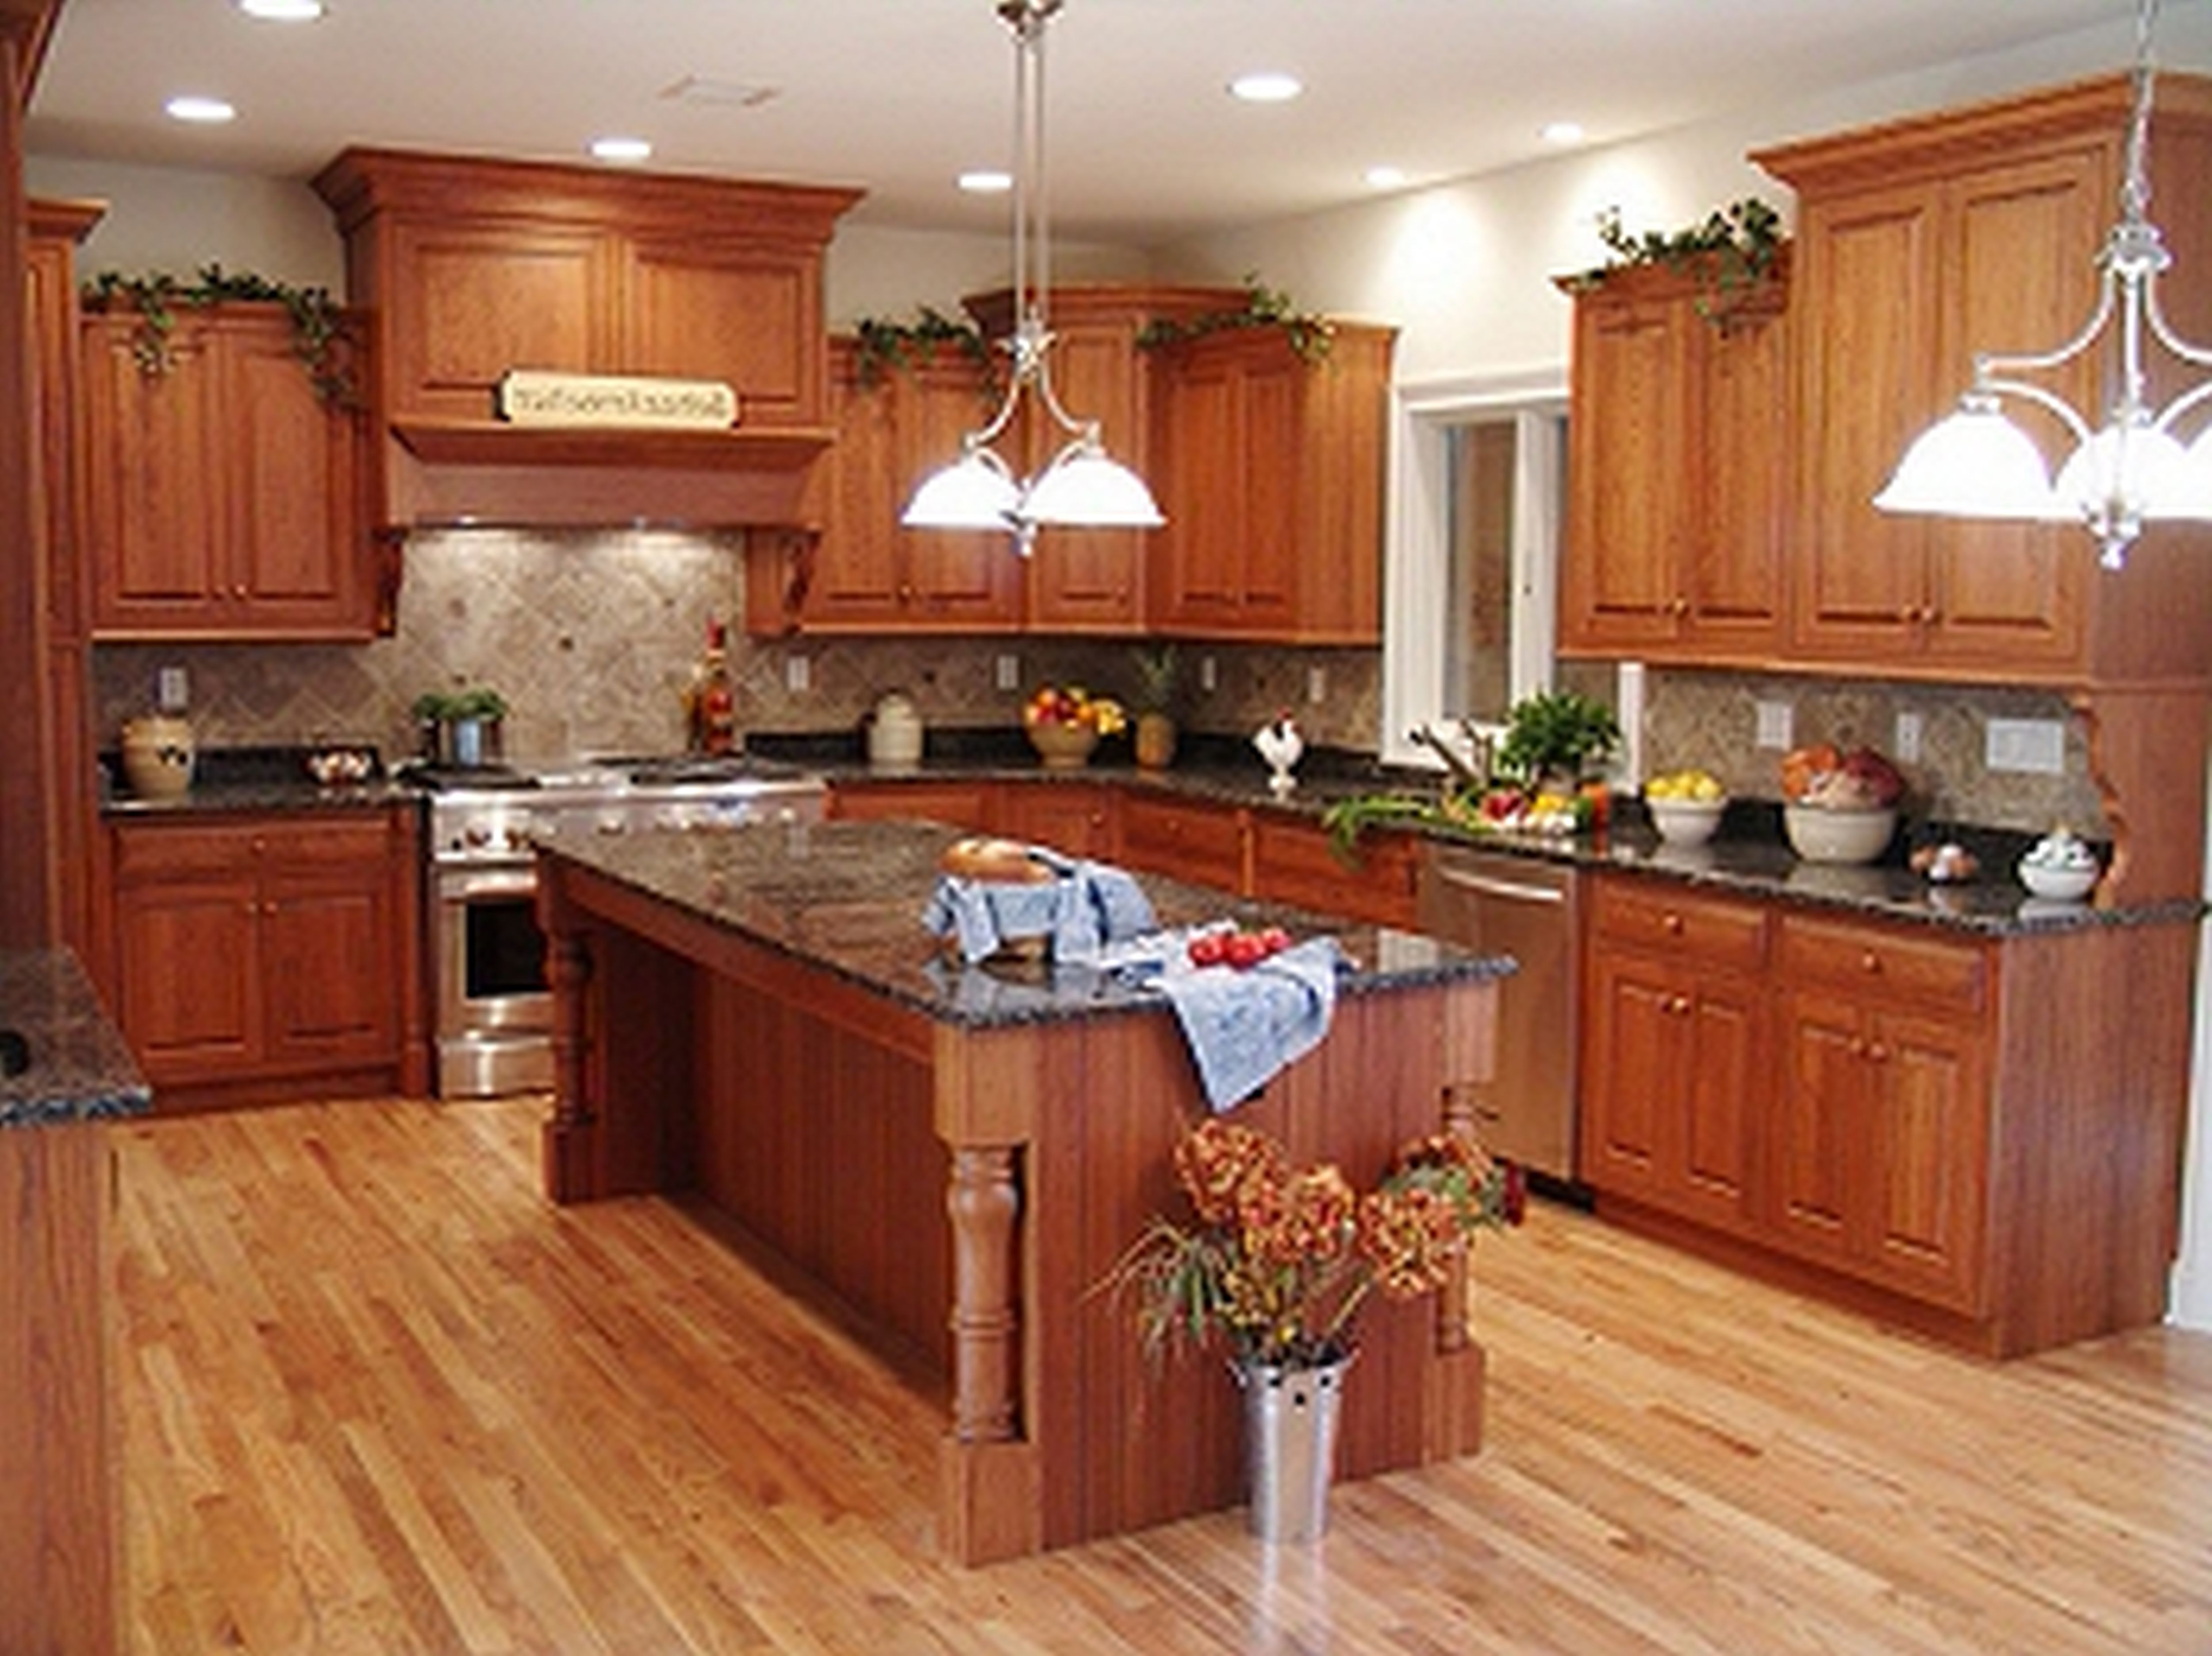 kitchen cabinets and flooring kitchen wood floors Rustic Kitchen Cabinets Fake Wooden Floor Plans With